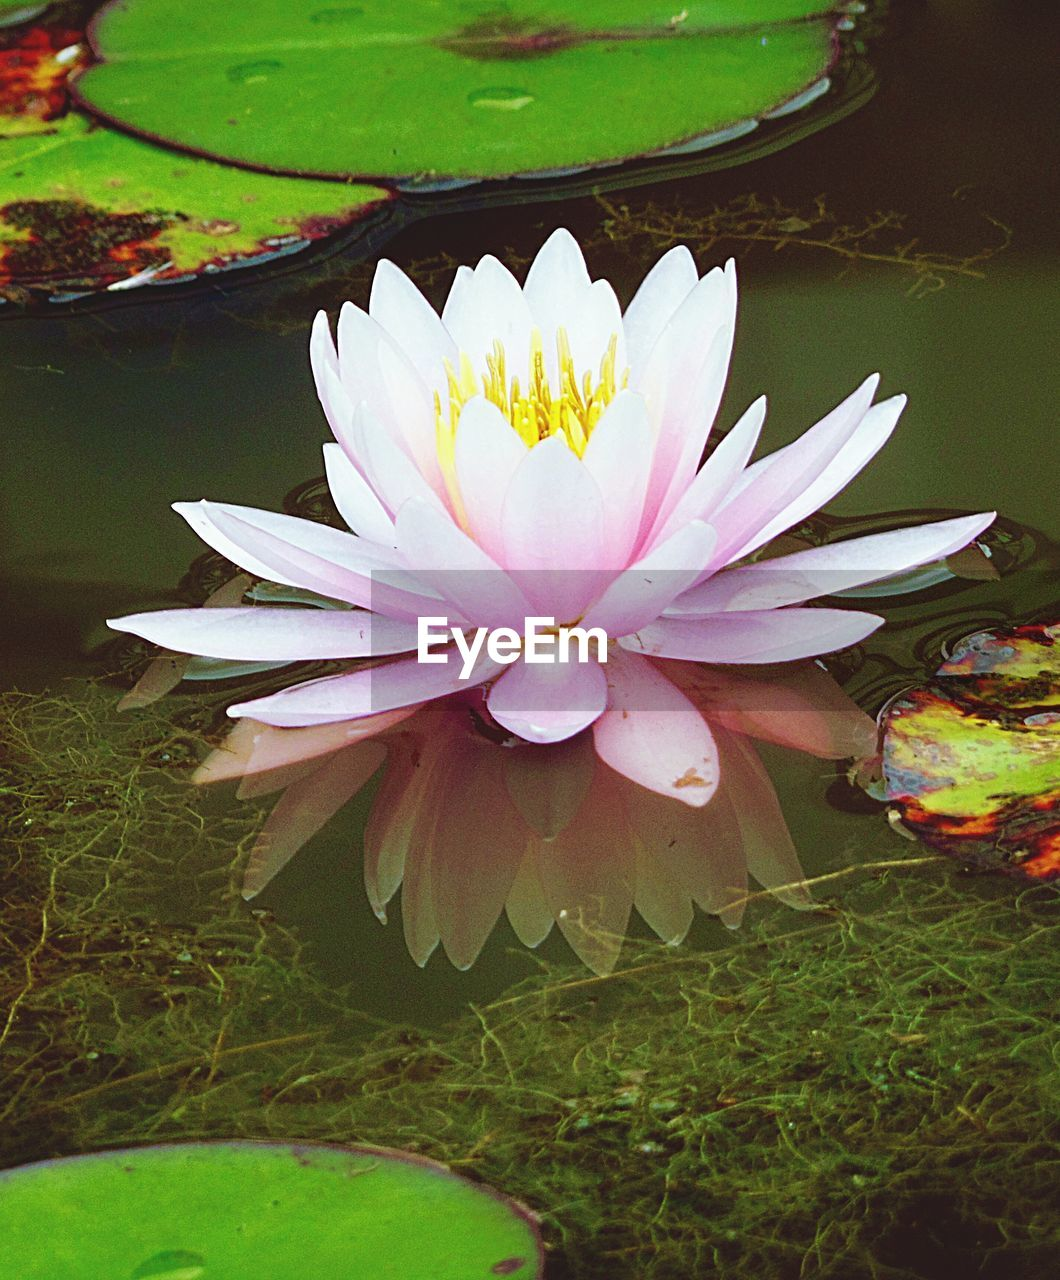 flower, petal, flower head, beauty in nature, freshness, nature, fragility, pond, water lily, growth, leaf, lotus water lily, no people, lotus, lily pad, close-up, plant, pollen, day, blooming, floating on water, water, outdoors